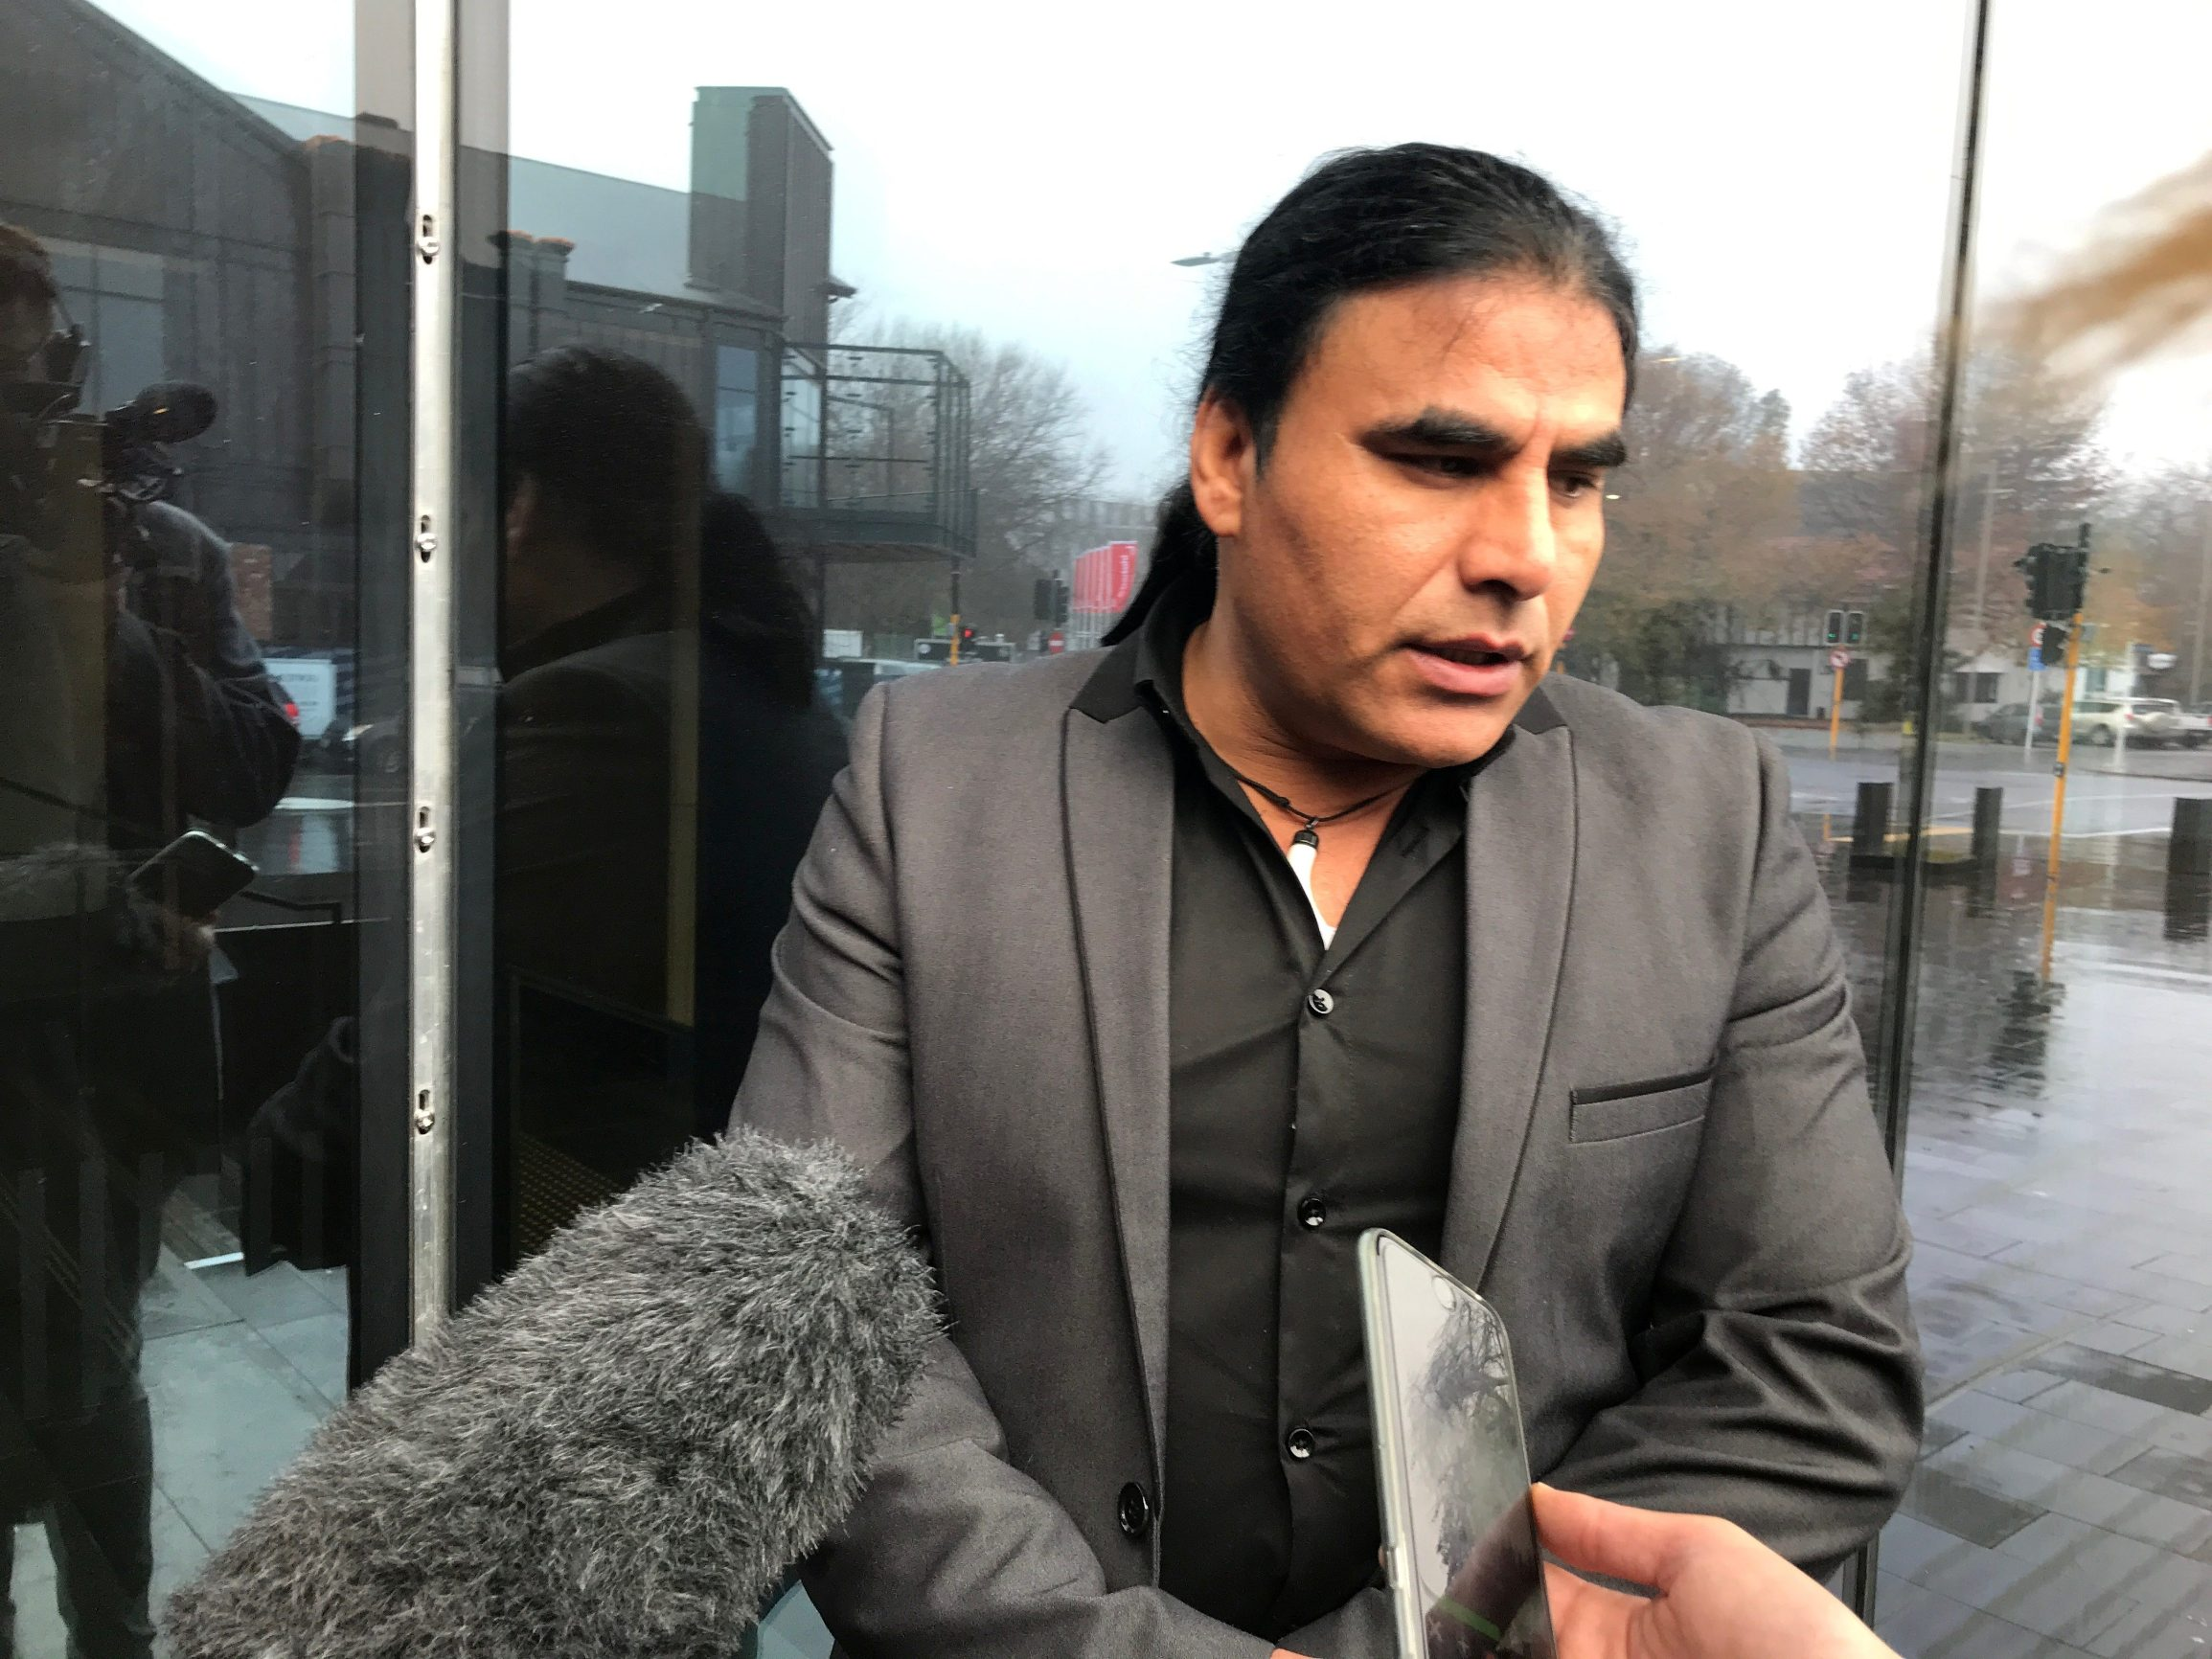 Abdul Aziz, who chased away gunman Brenton Tarrant with an Eftpos machine at Linwood mosque on March 15, speaks to journalists outside the Christchurch High Court in Christchurch, New Zealand June 14, 2019.   REUTERS/Charlotte Greenfield